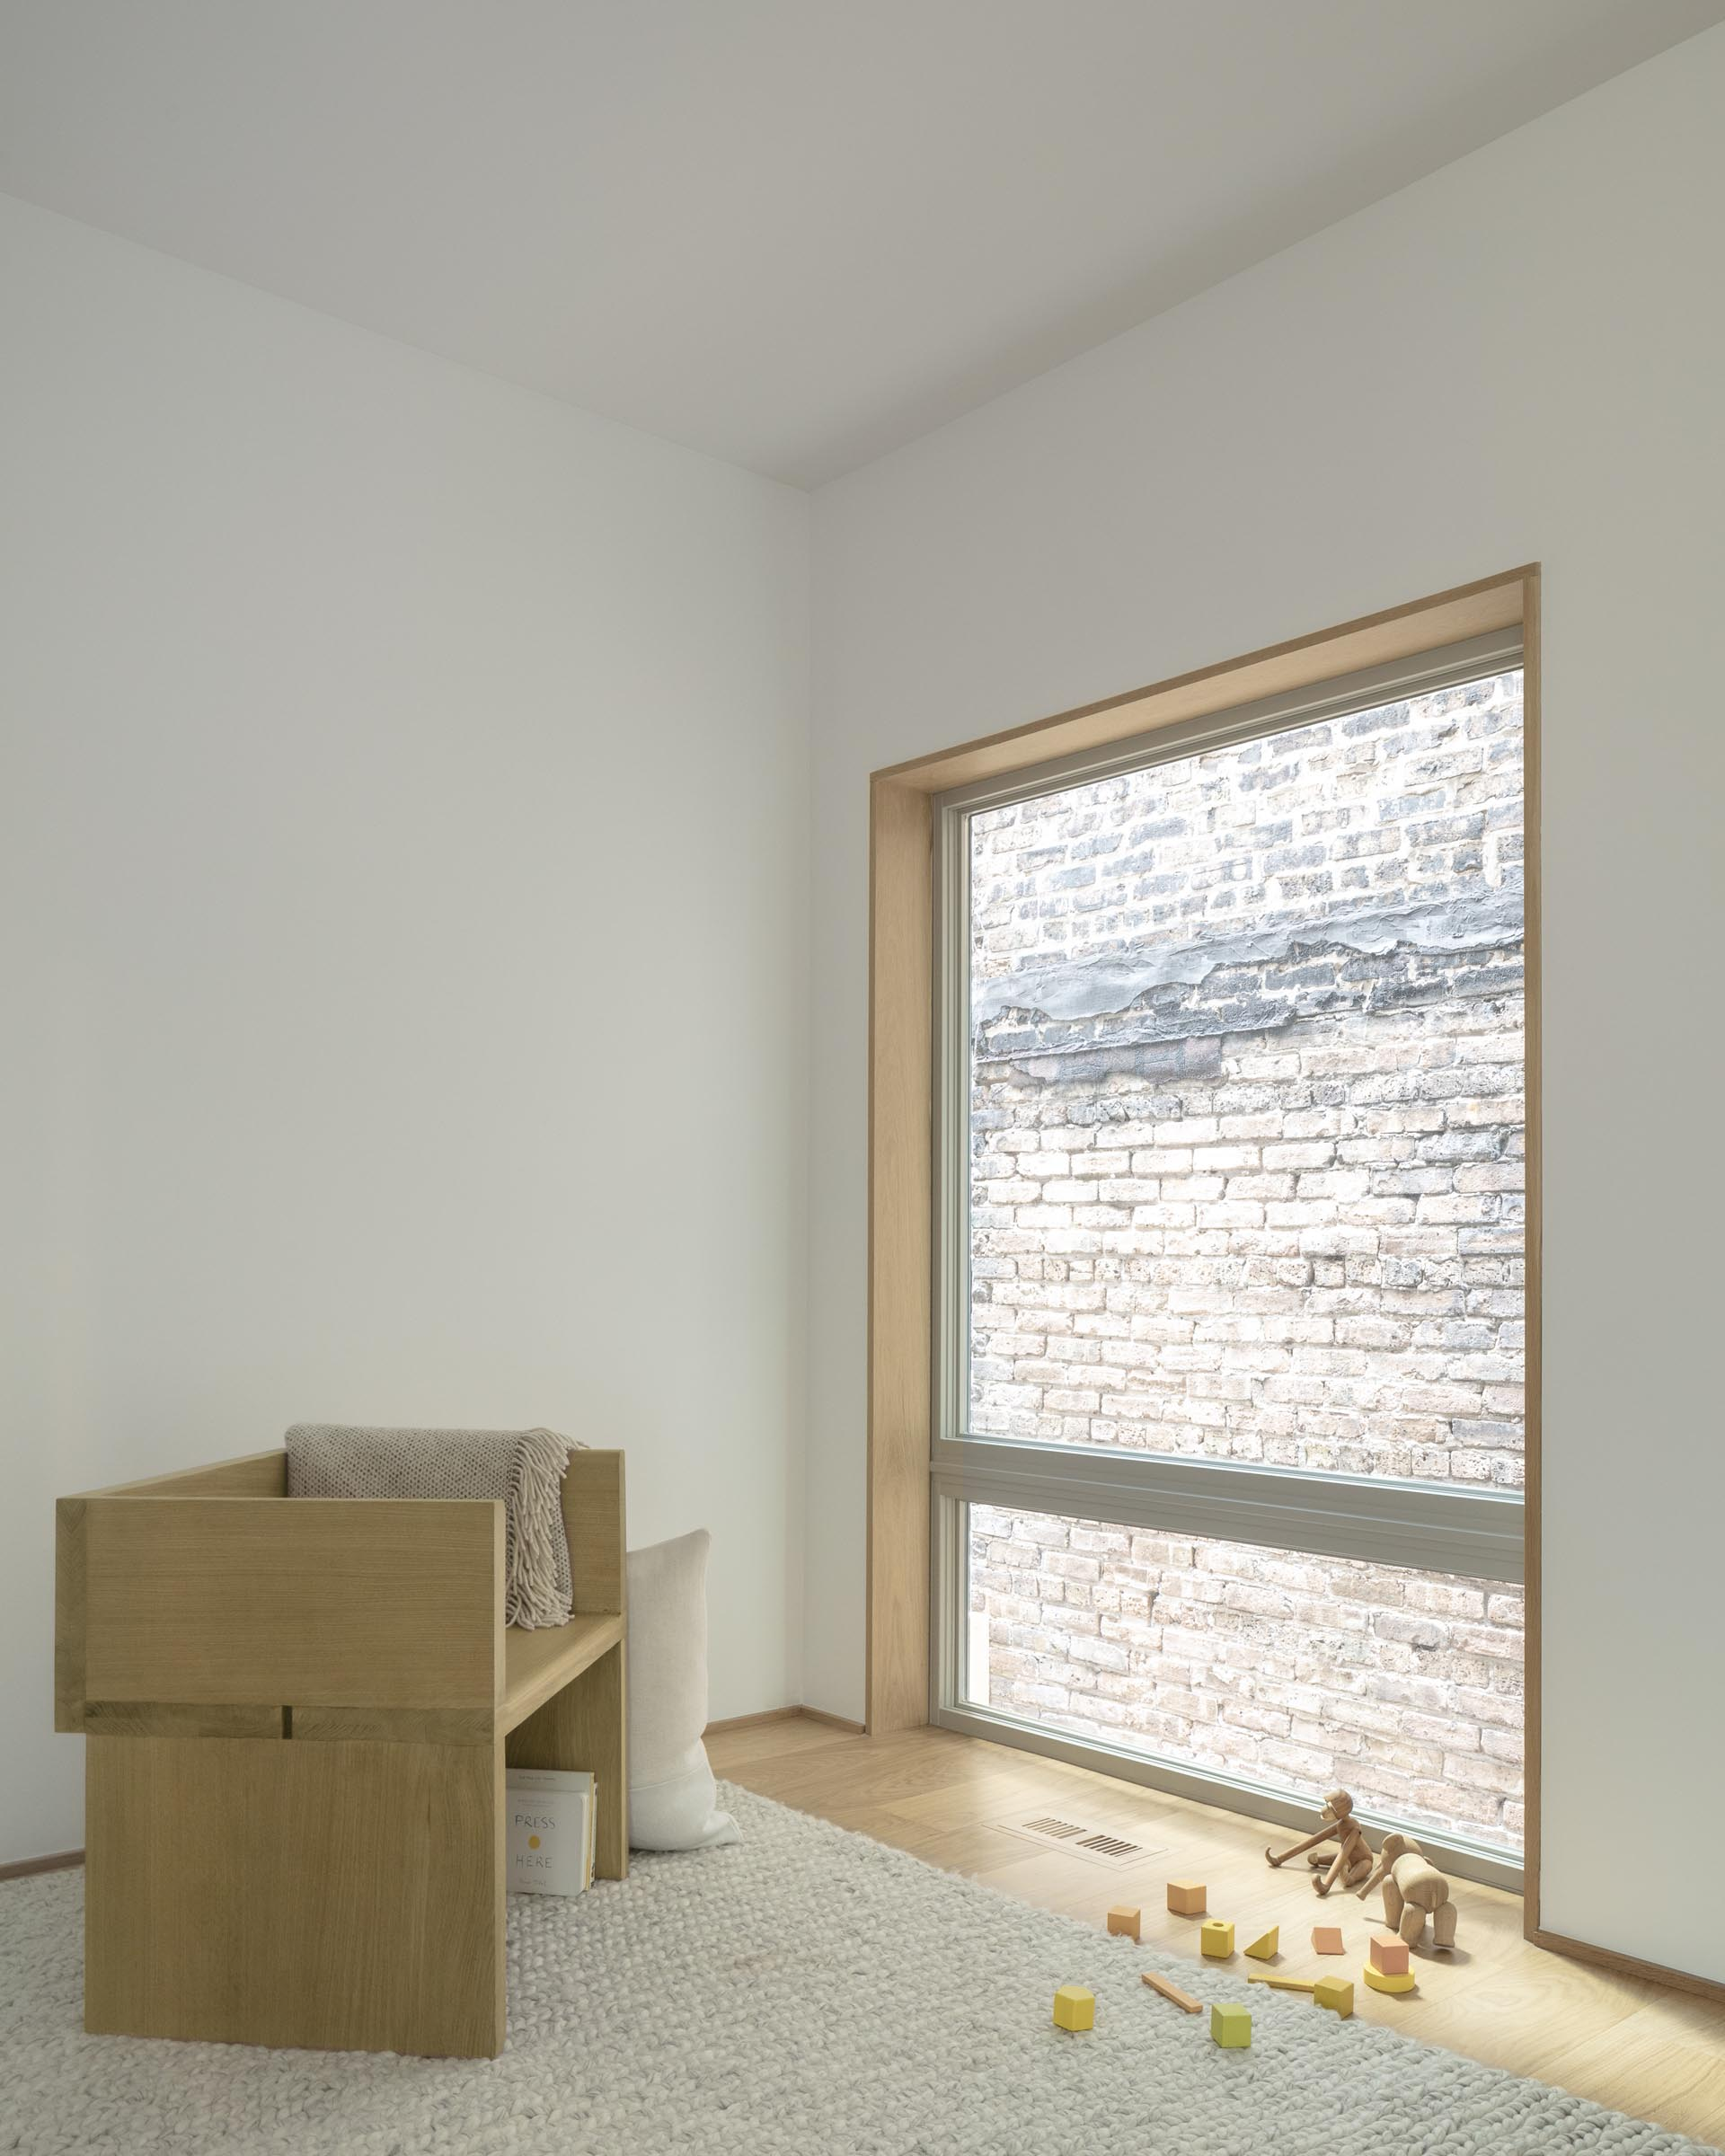 A modern white home interior with wood window frames.